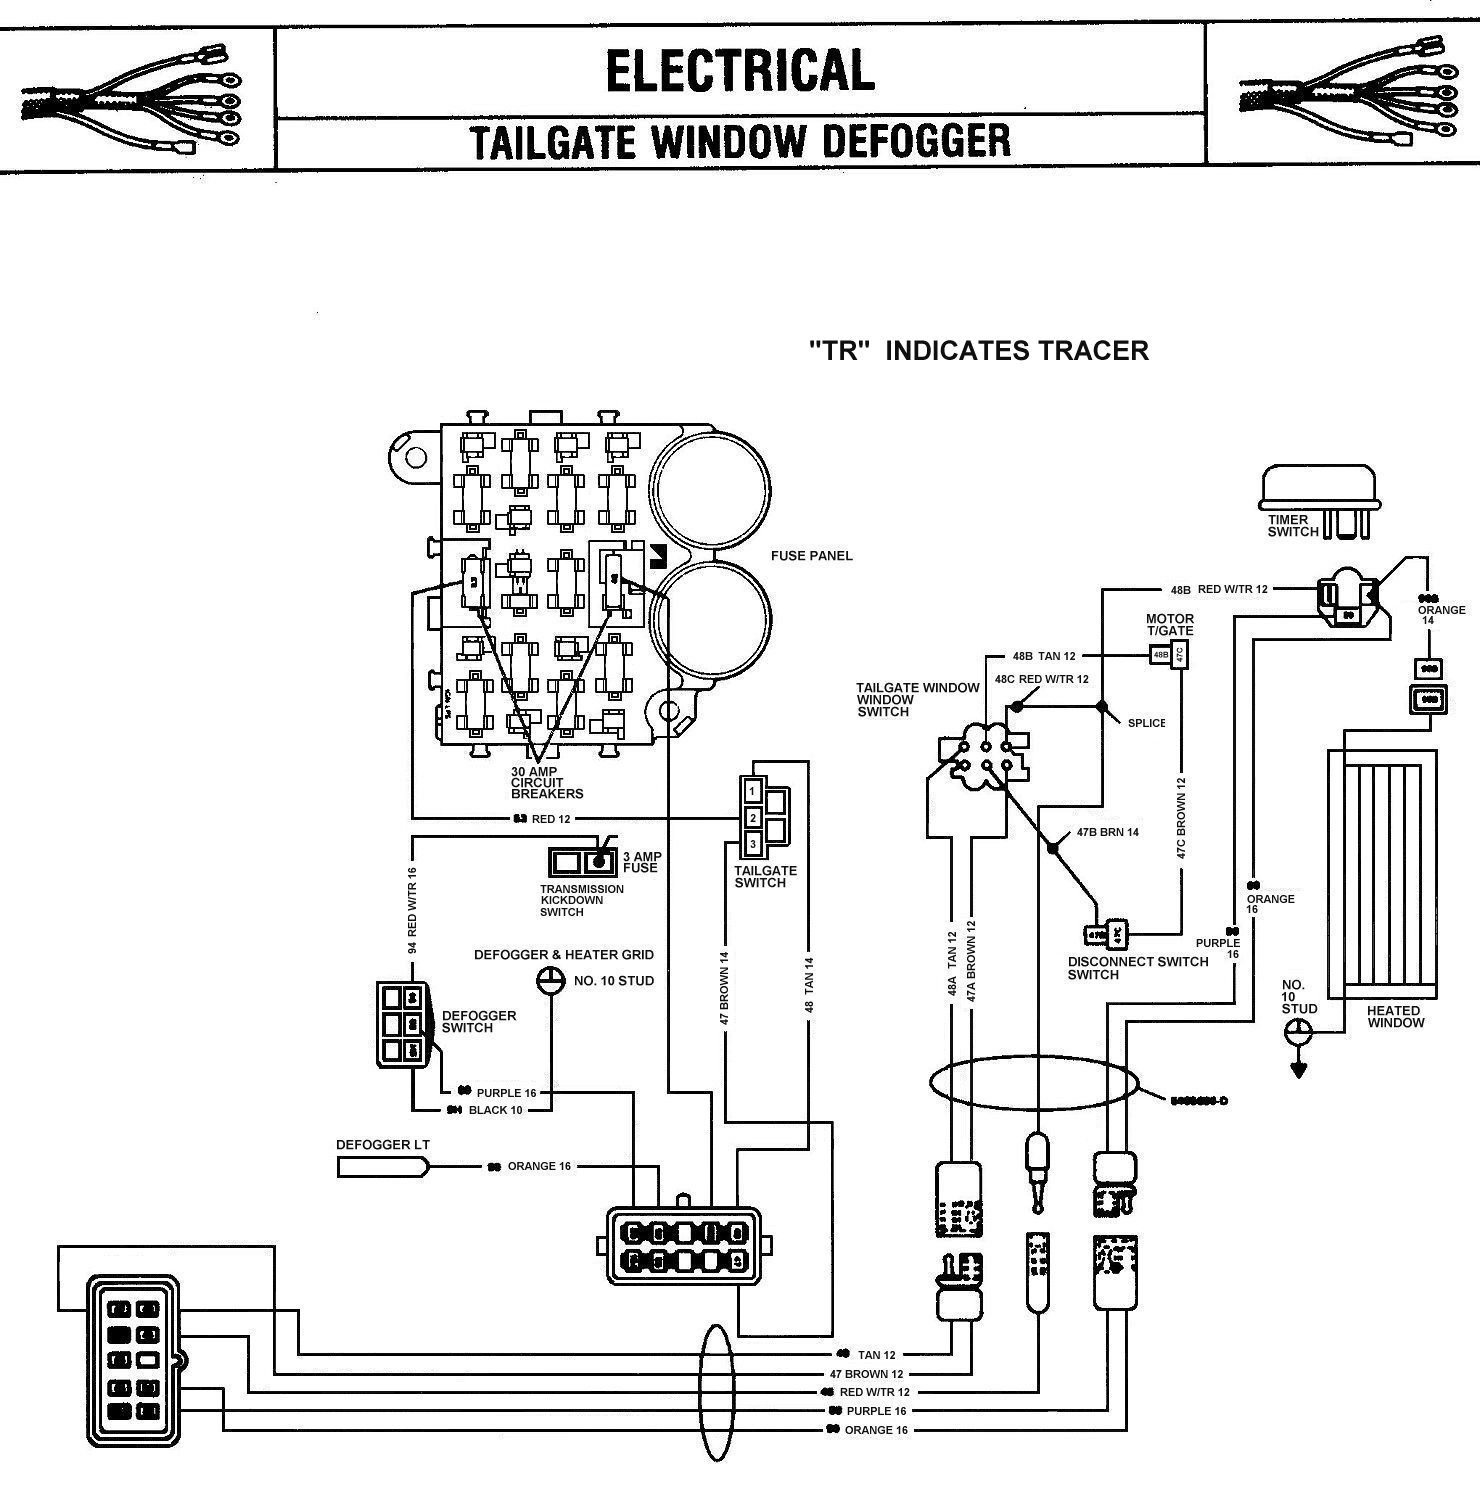 1985 jeep cj wiring diagram best wiring library rh 23 princestaash org